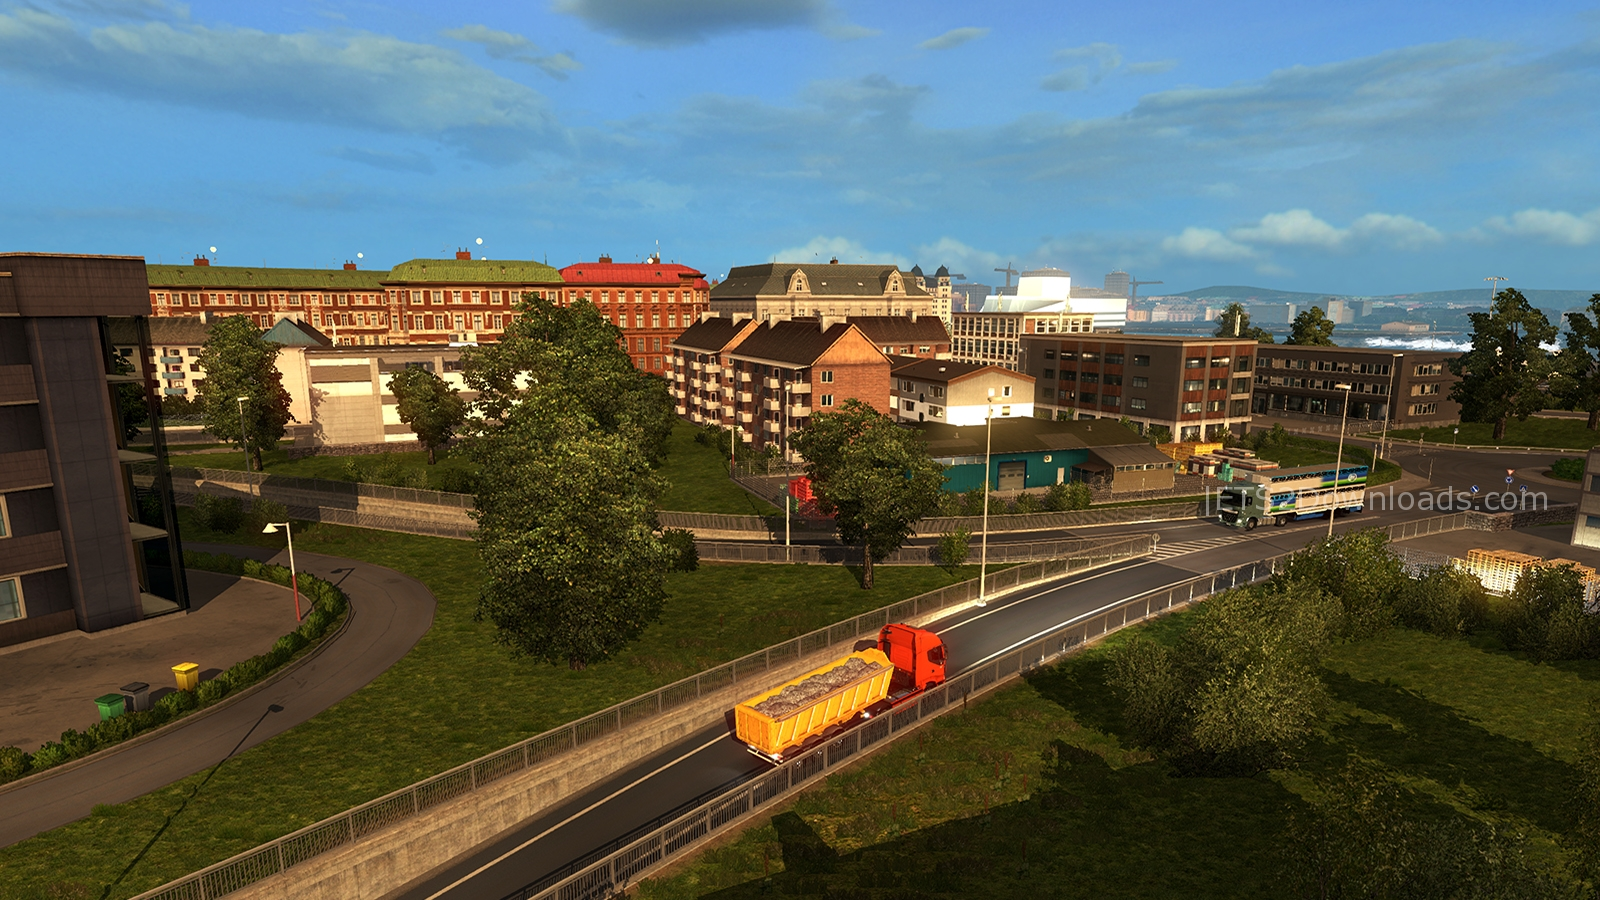 oslo-the-biggest-city-in-scandinavia-dlc-5